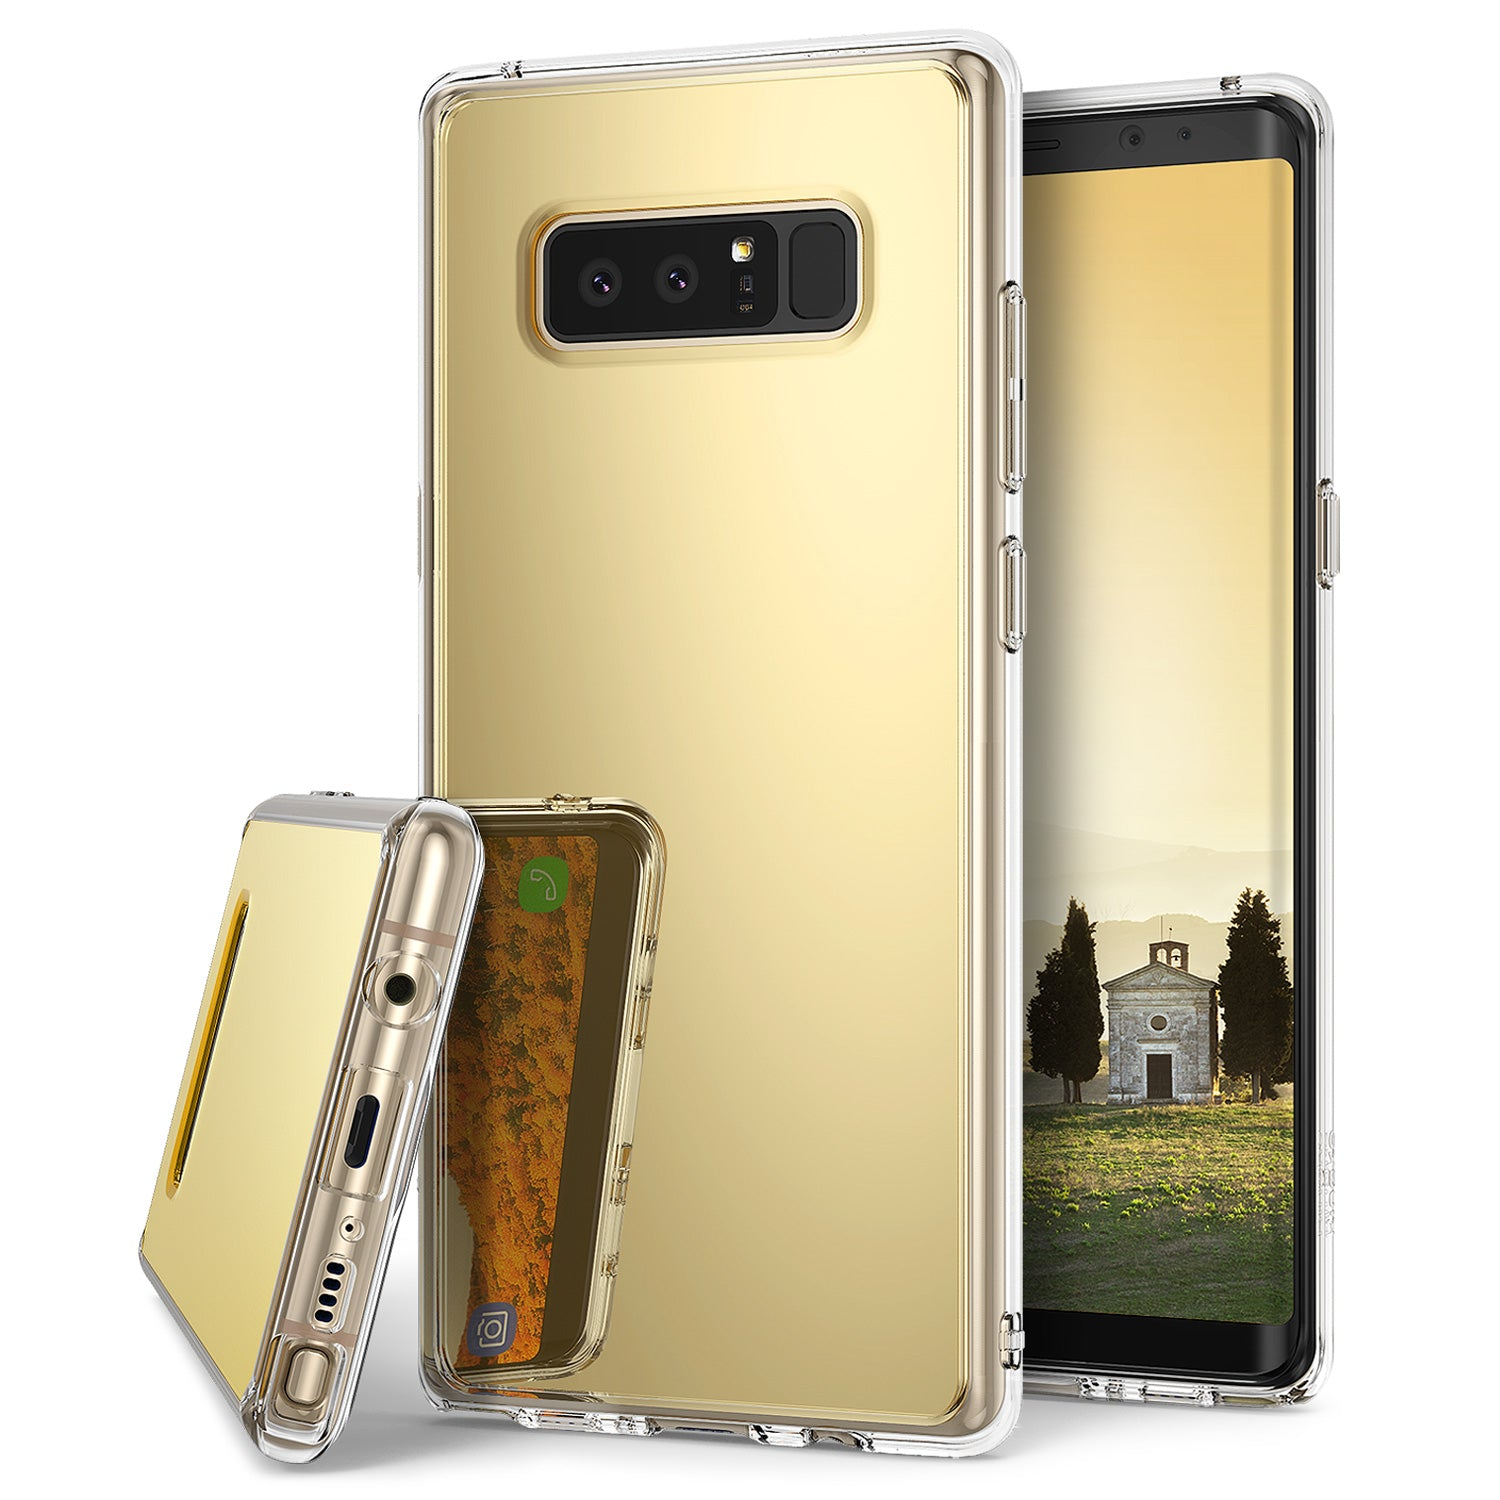 ringke mirror case for galaxy note 8 - royal gold